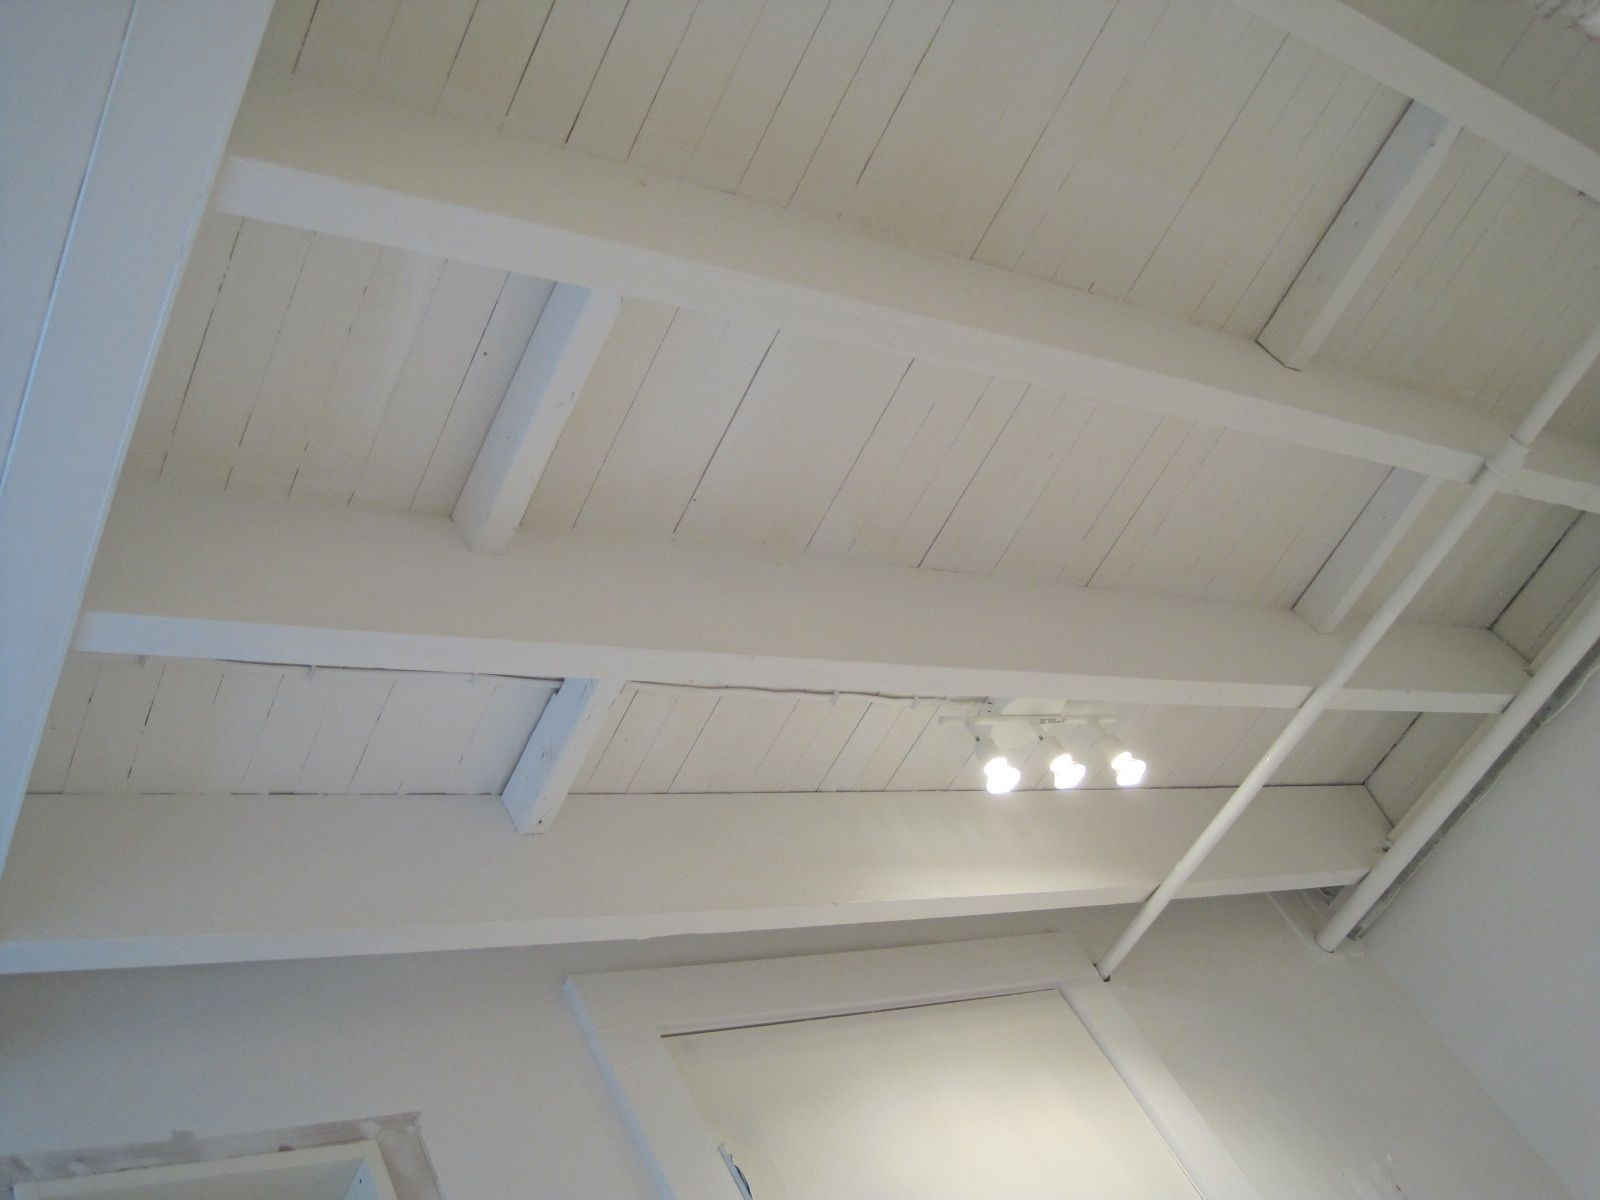 The stucco bungalow adventures in tiny home improvement painting ceiling dailygadgetfo Gallery